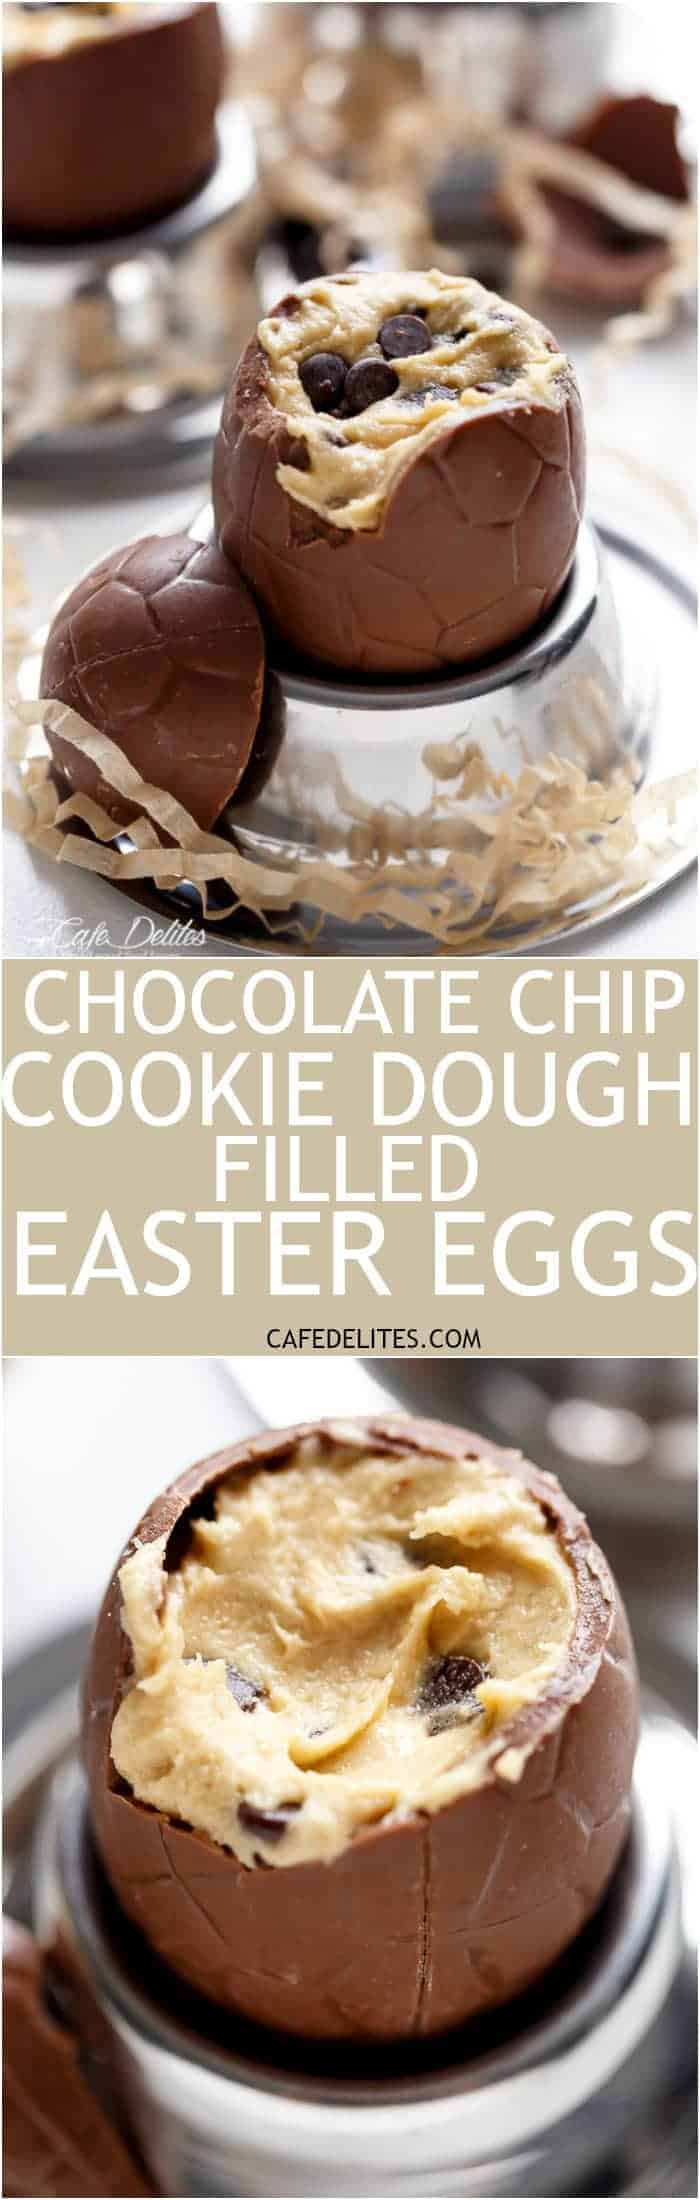 Chocolate Chip Cookie Dough Filled Easter Eggs! Perfect for any event, party OR to use up those Easter eggs in a completely decadent way! | https://cafedelites.com